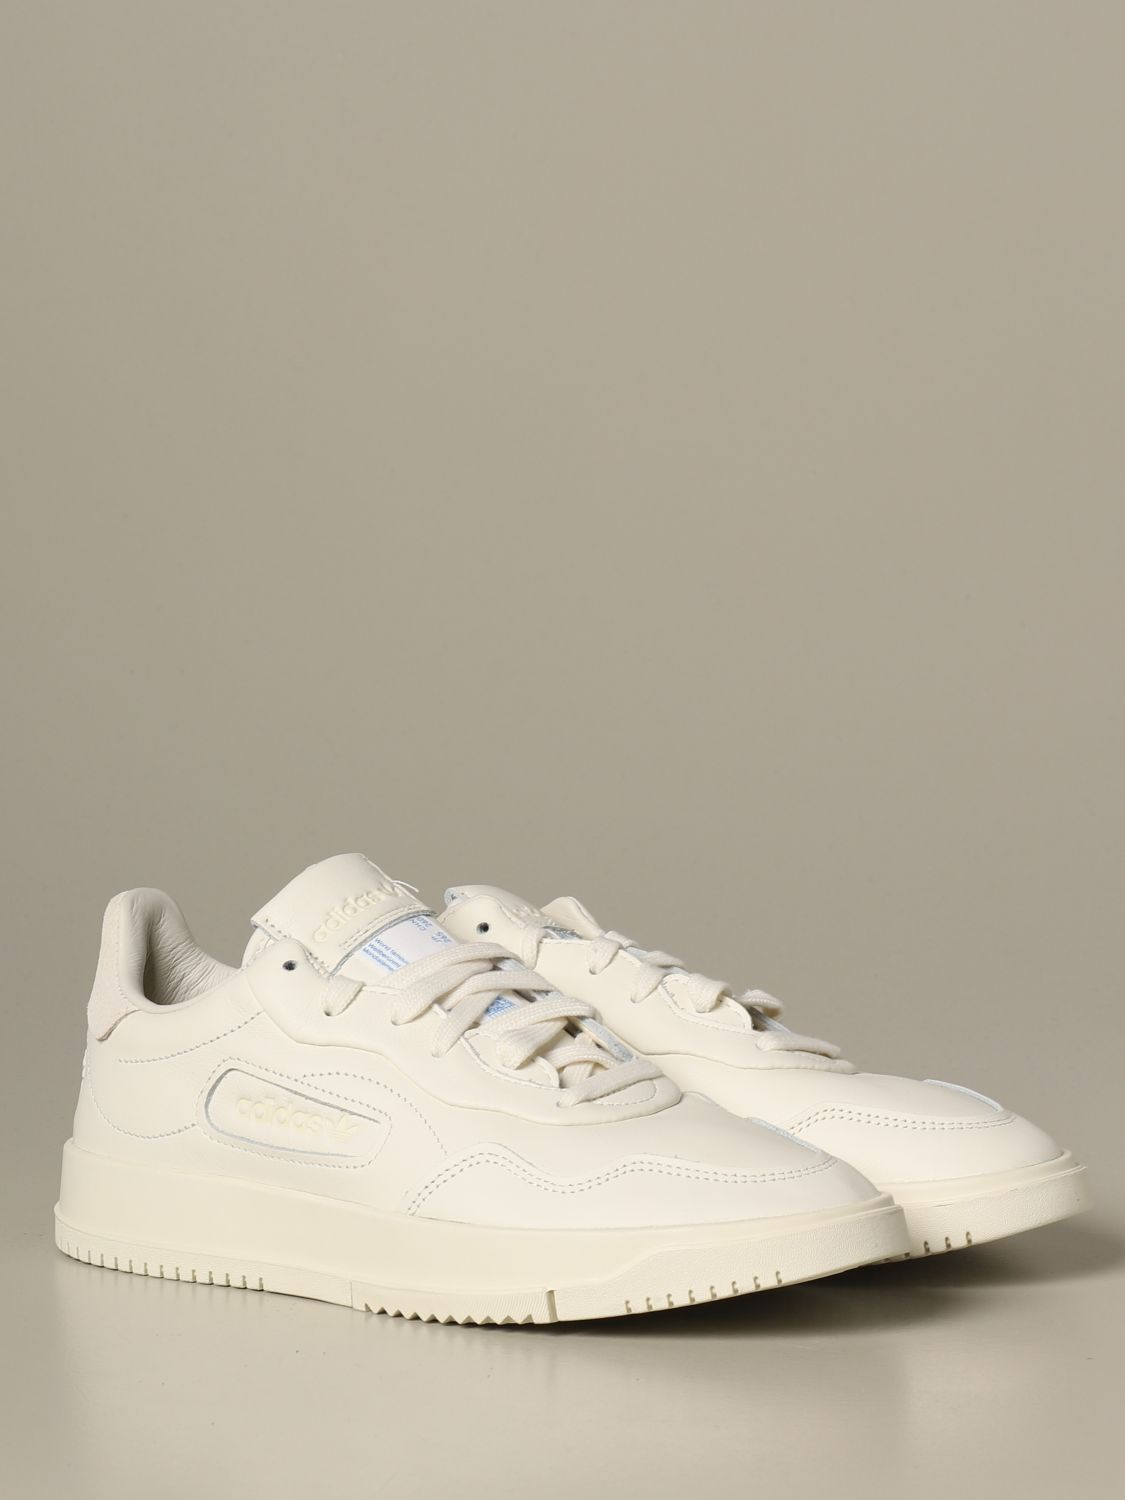 Sneakers Adidas Originals: Sneakers men Adidas Originals white 2